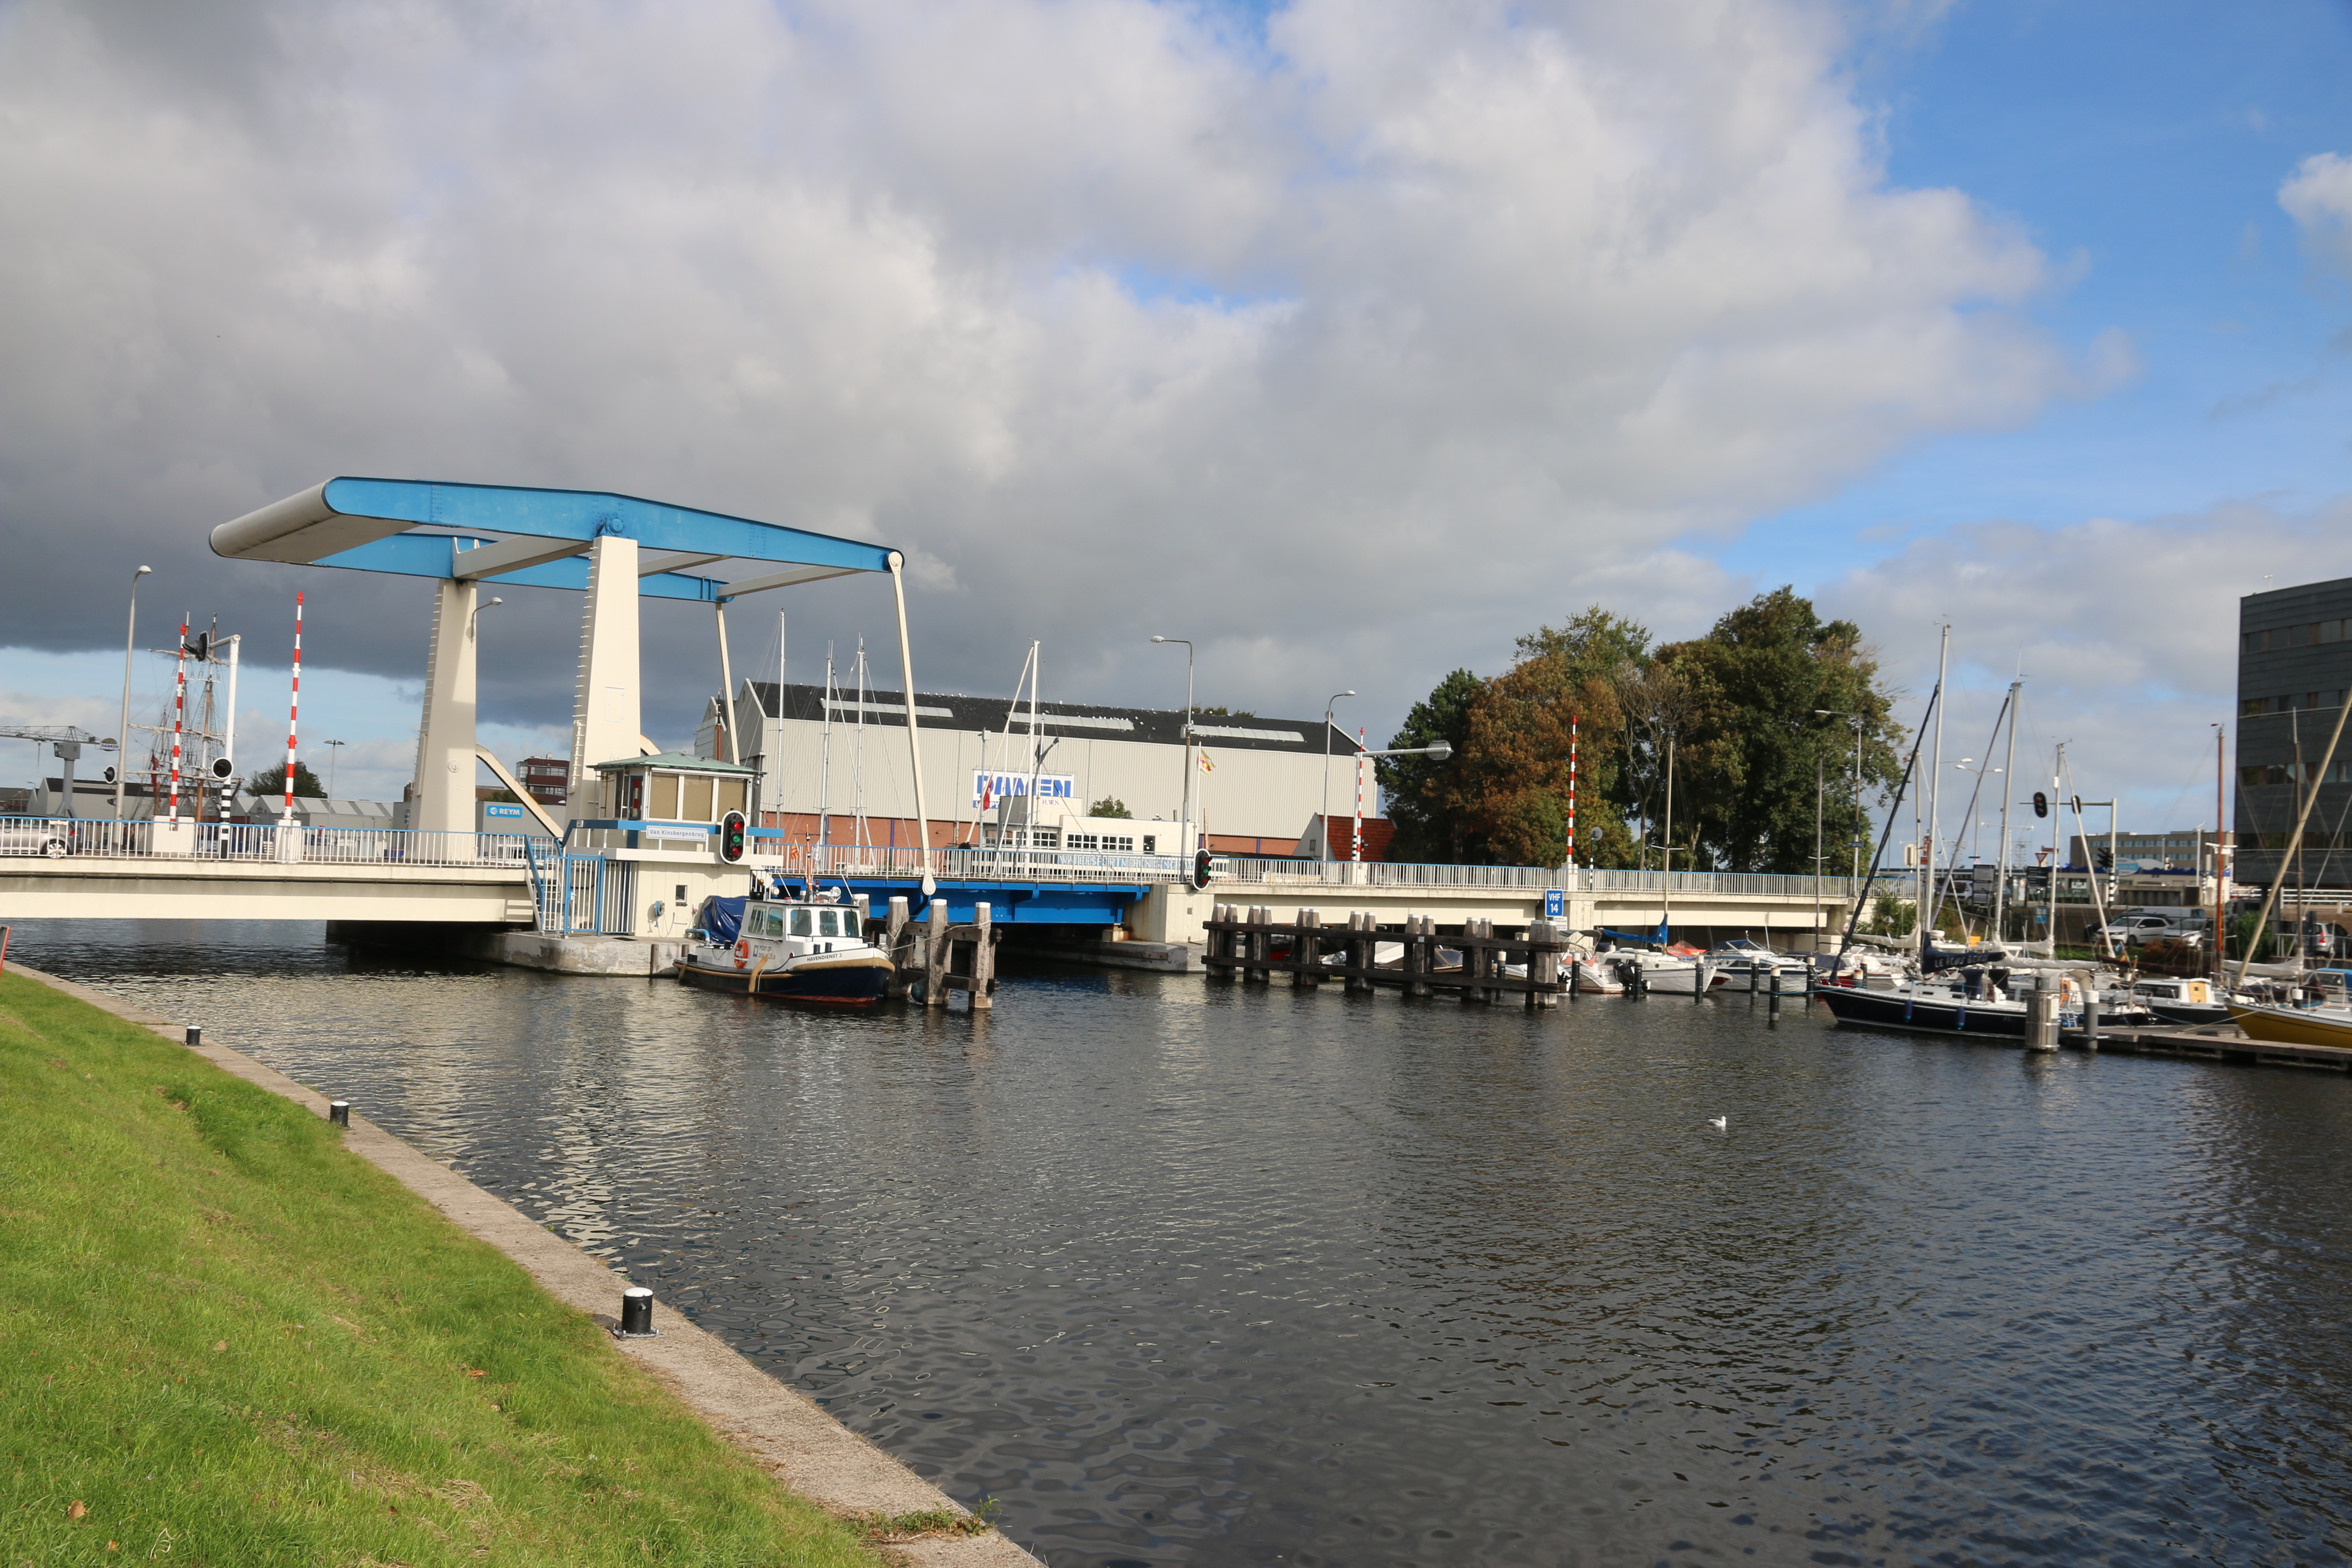 Watersportvereniging H.W.N.